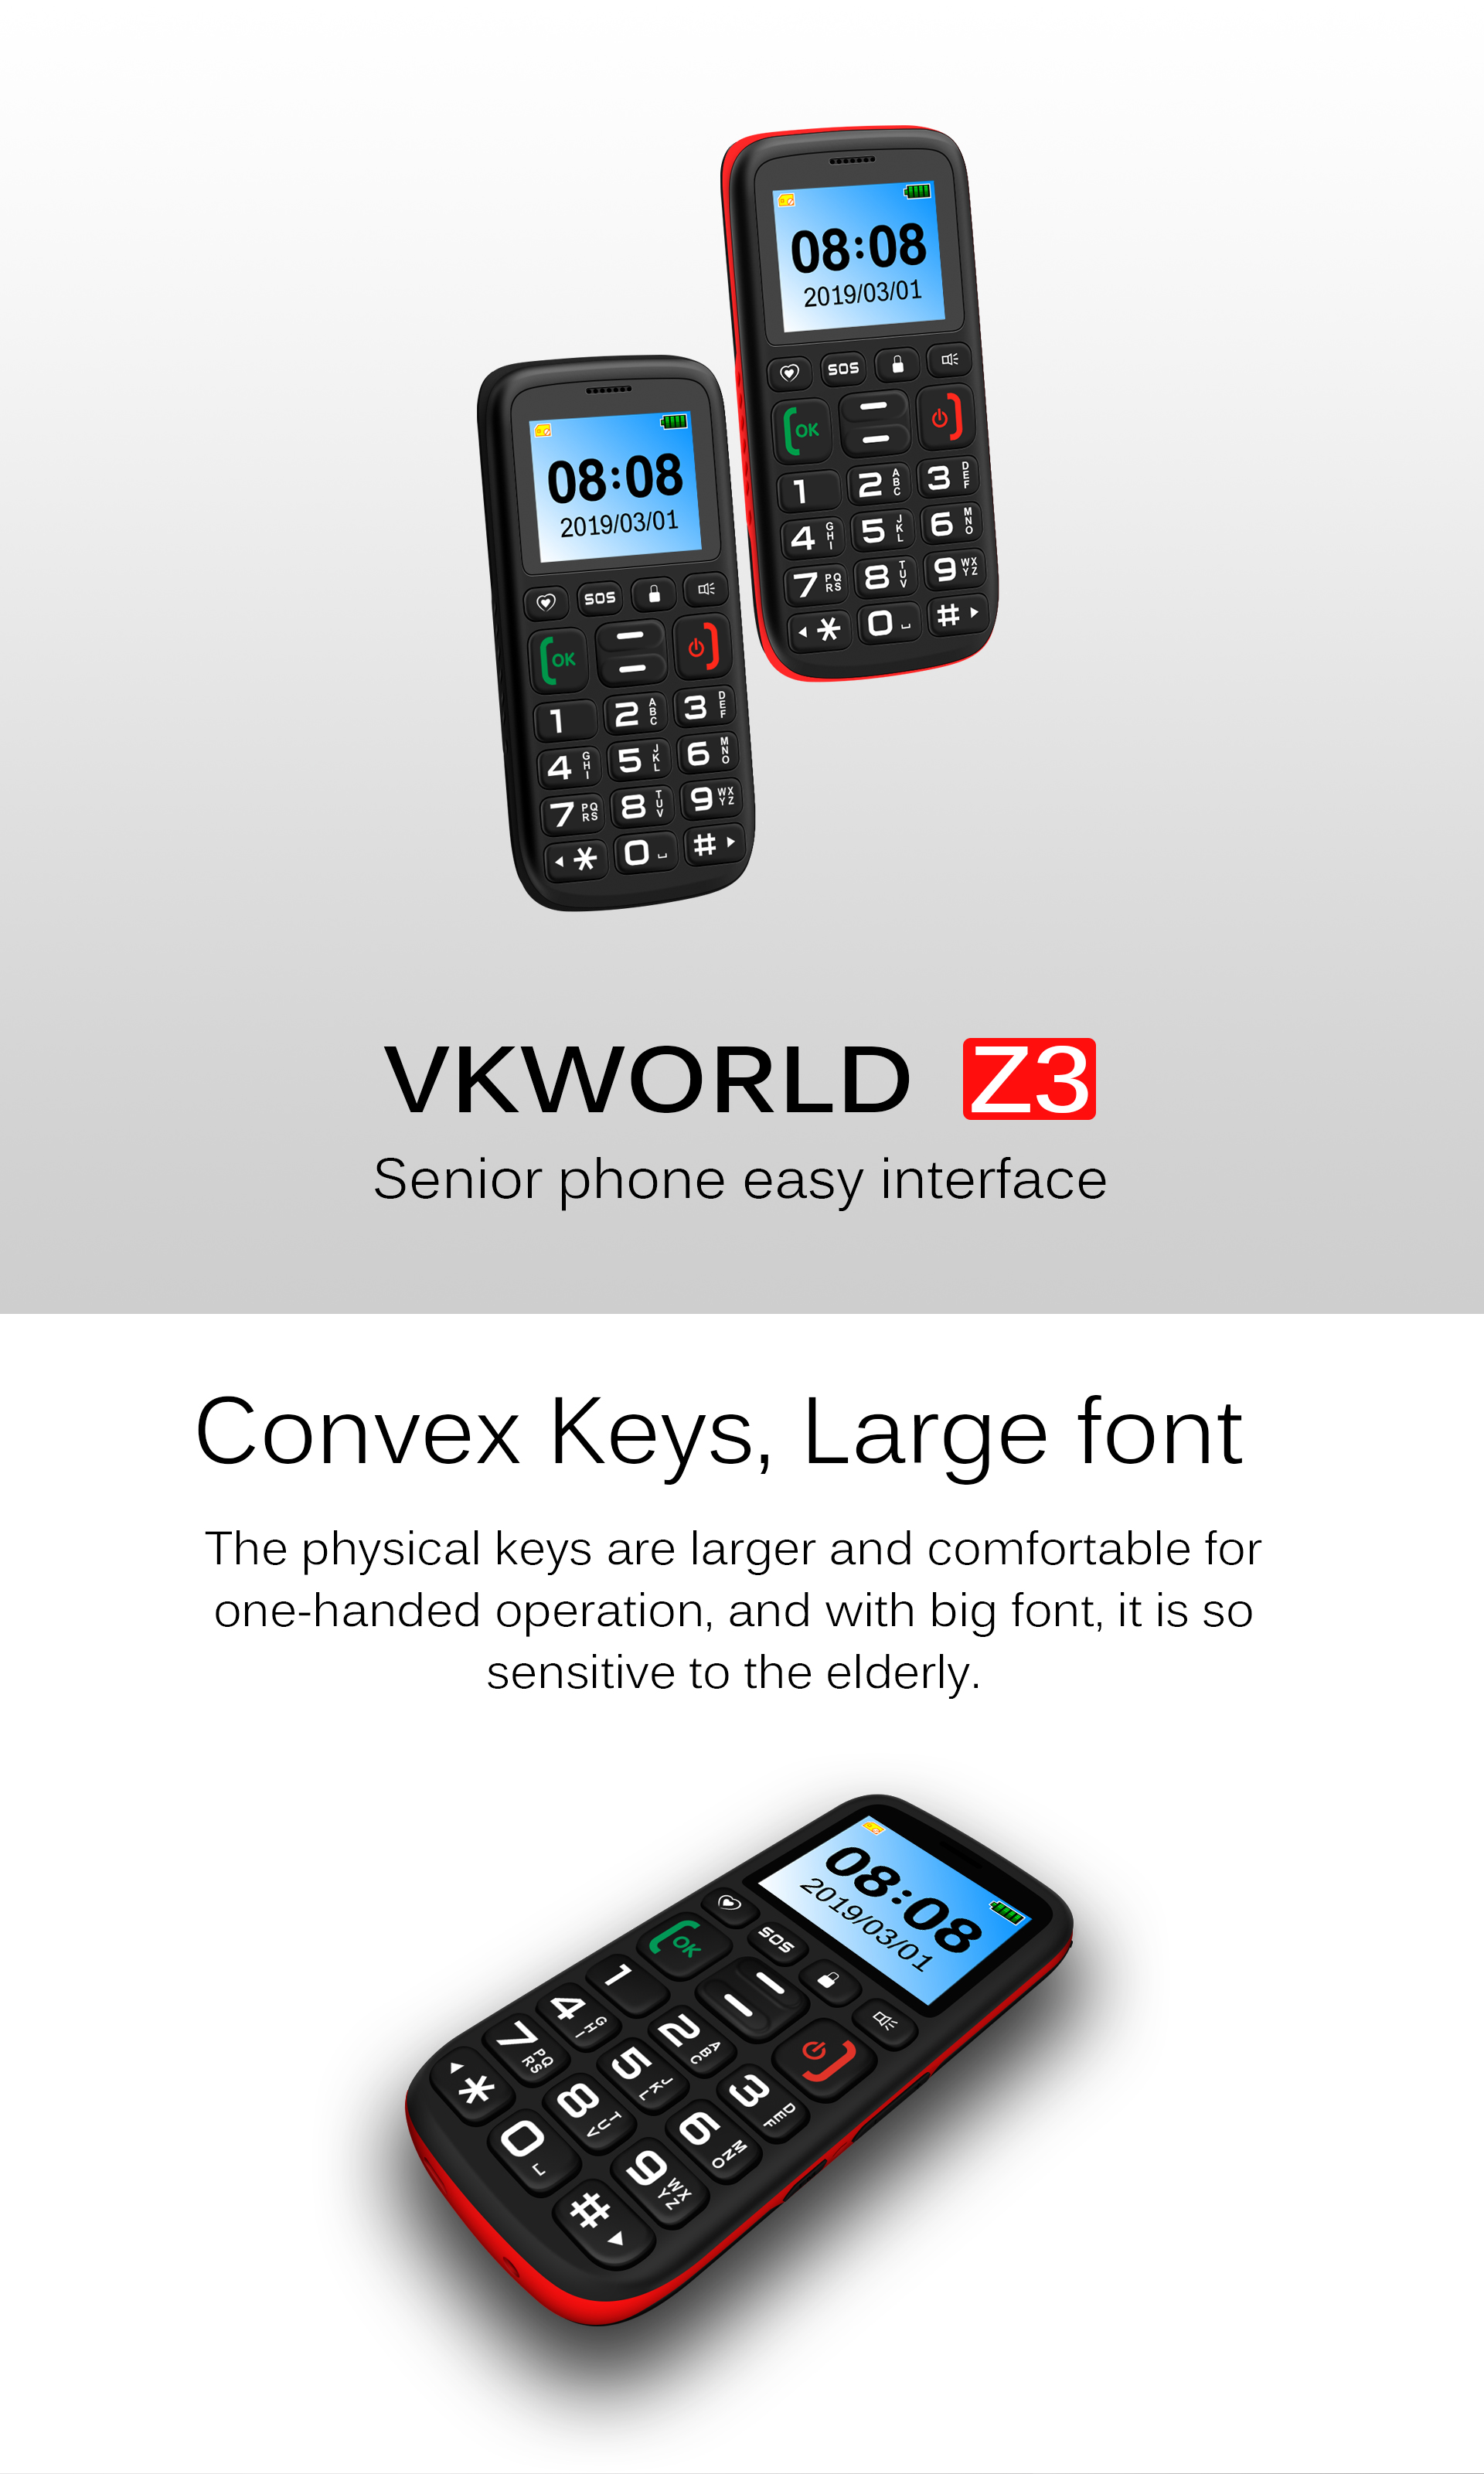 VKWORLD Z3 Cheap India Feature 2G  Mobile Phone The Old's Phone 1.77 inch FM Cellphone no camera China Manufactory